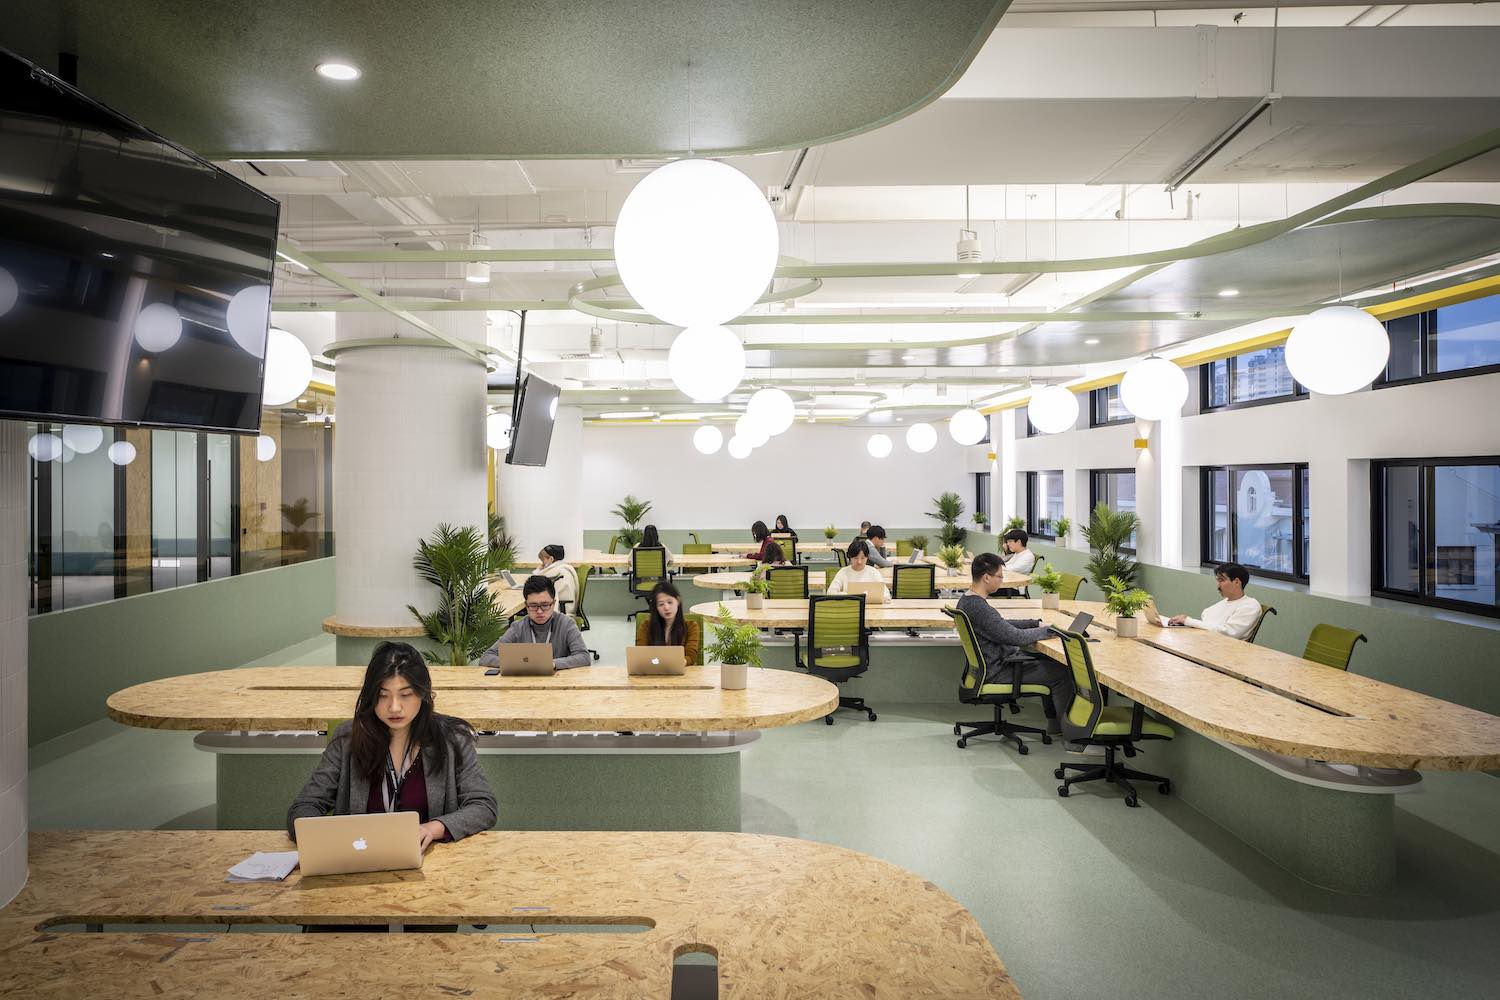 employees are working on desks